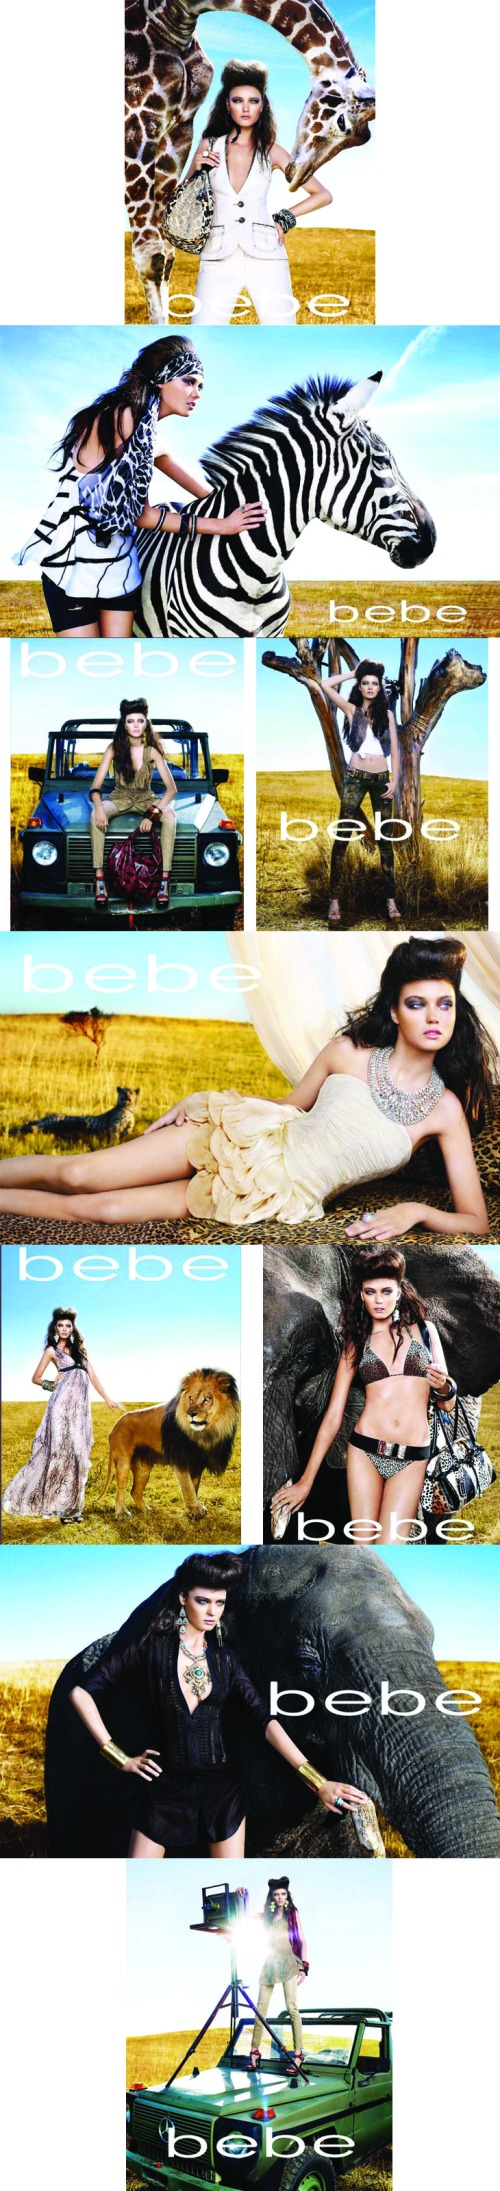 bebe collage